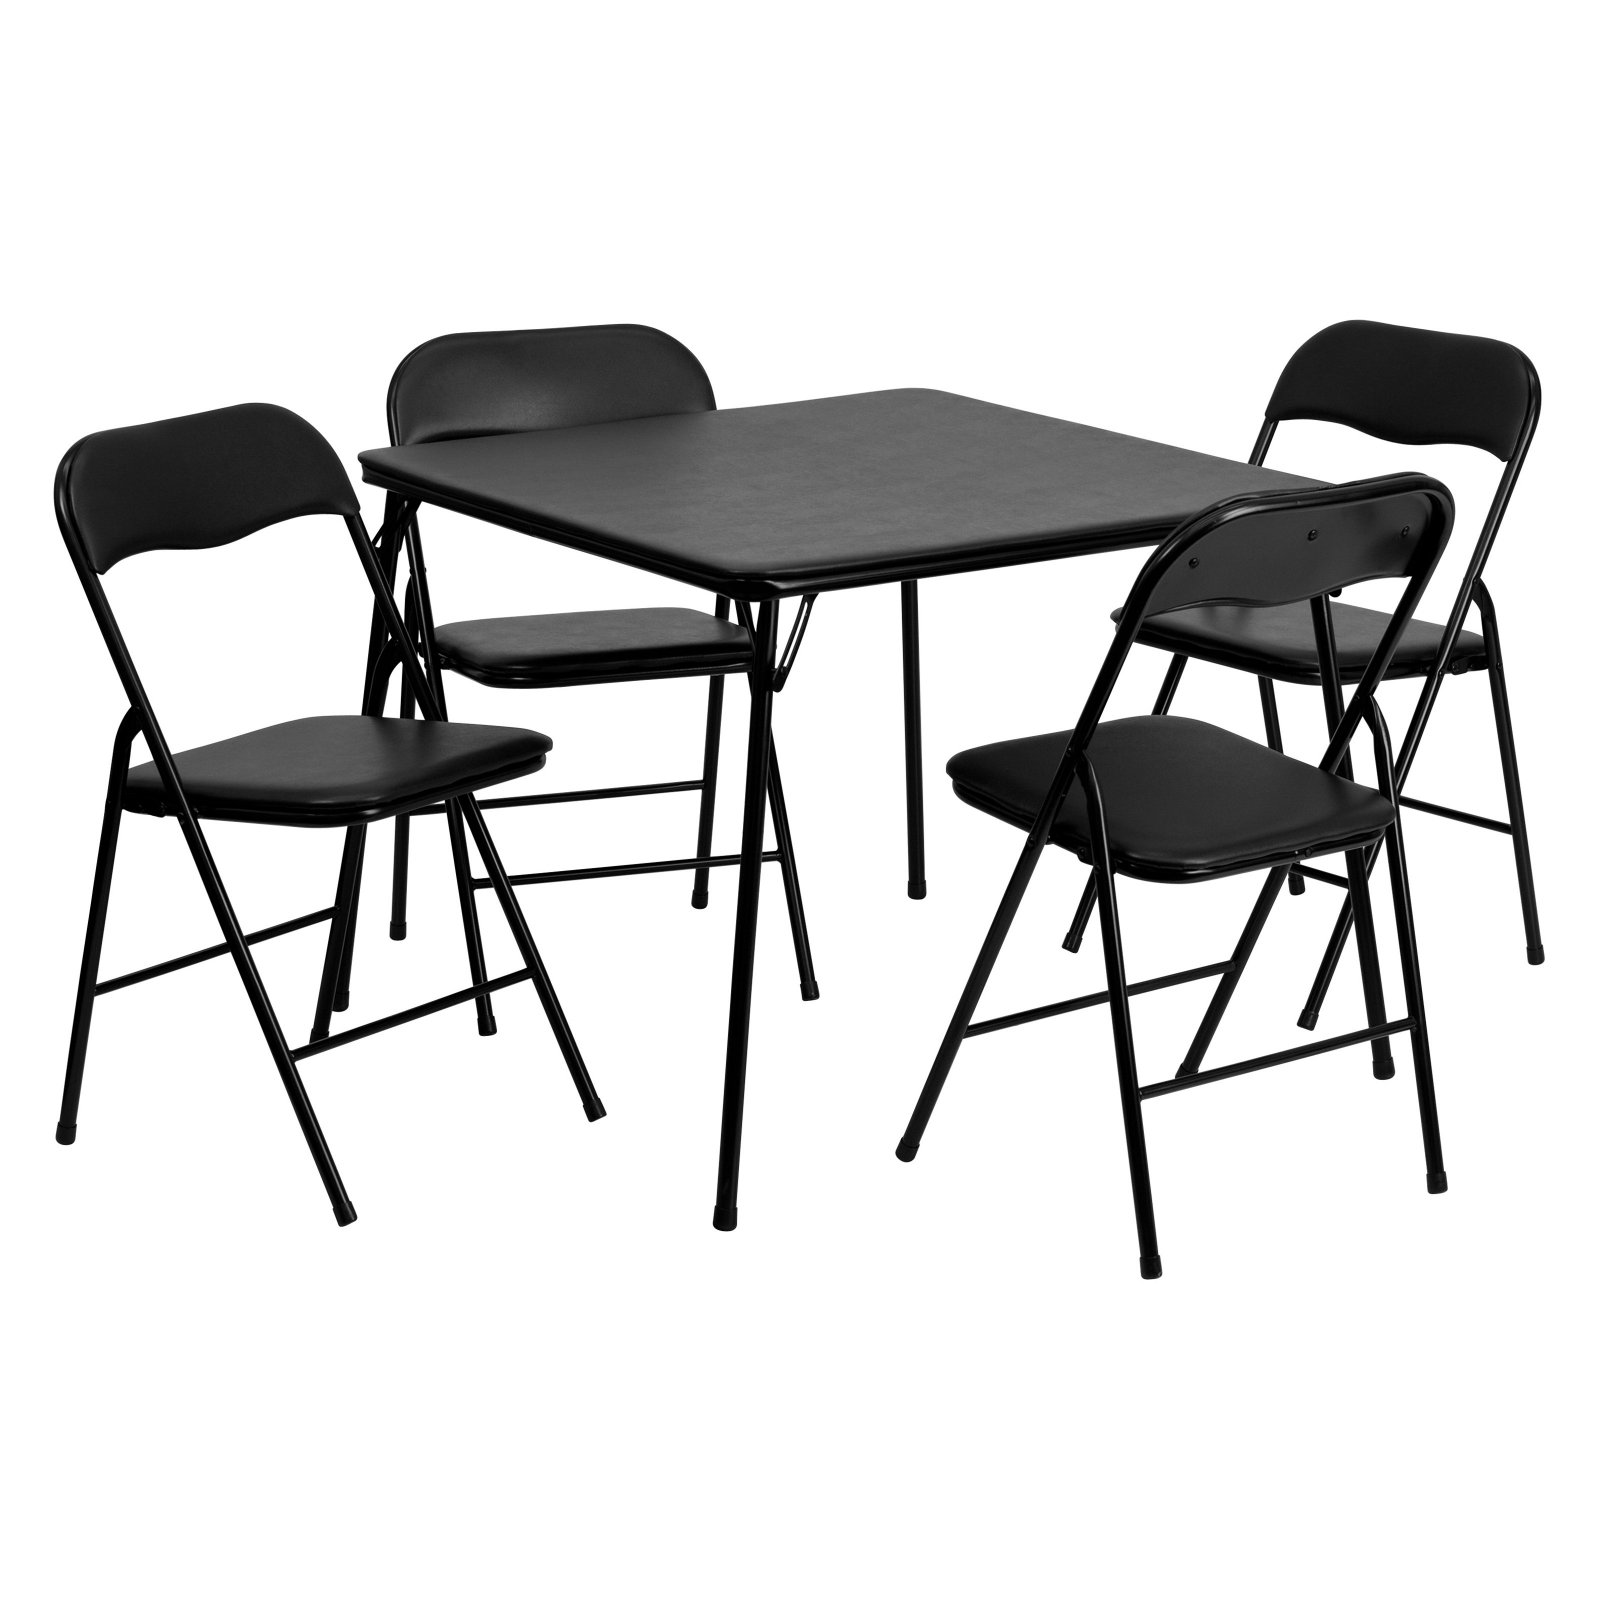 Flash Furniture 5 Piece Black Folding Card Table and Chair Set by Flash Furniture